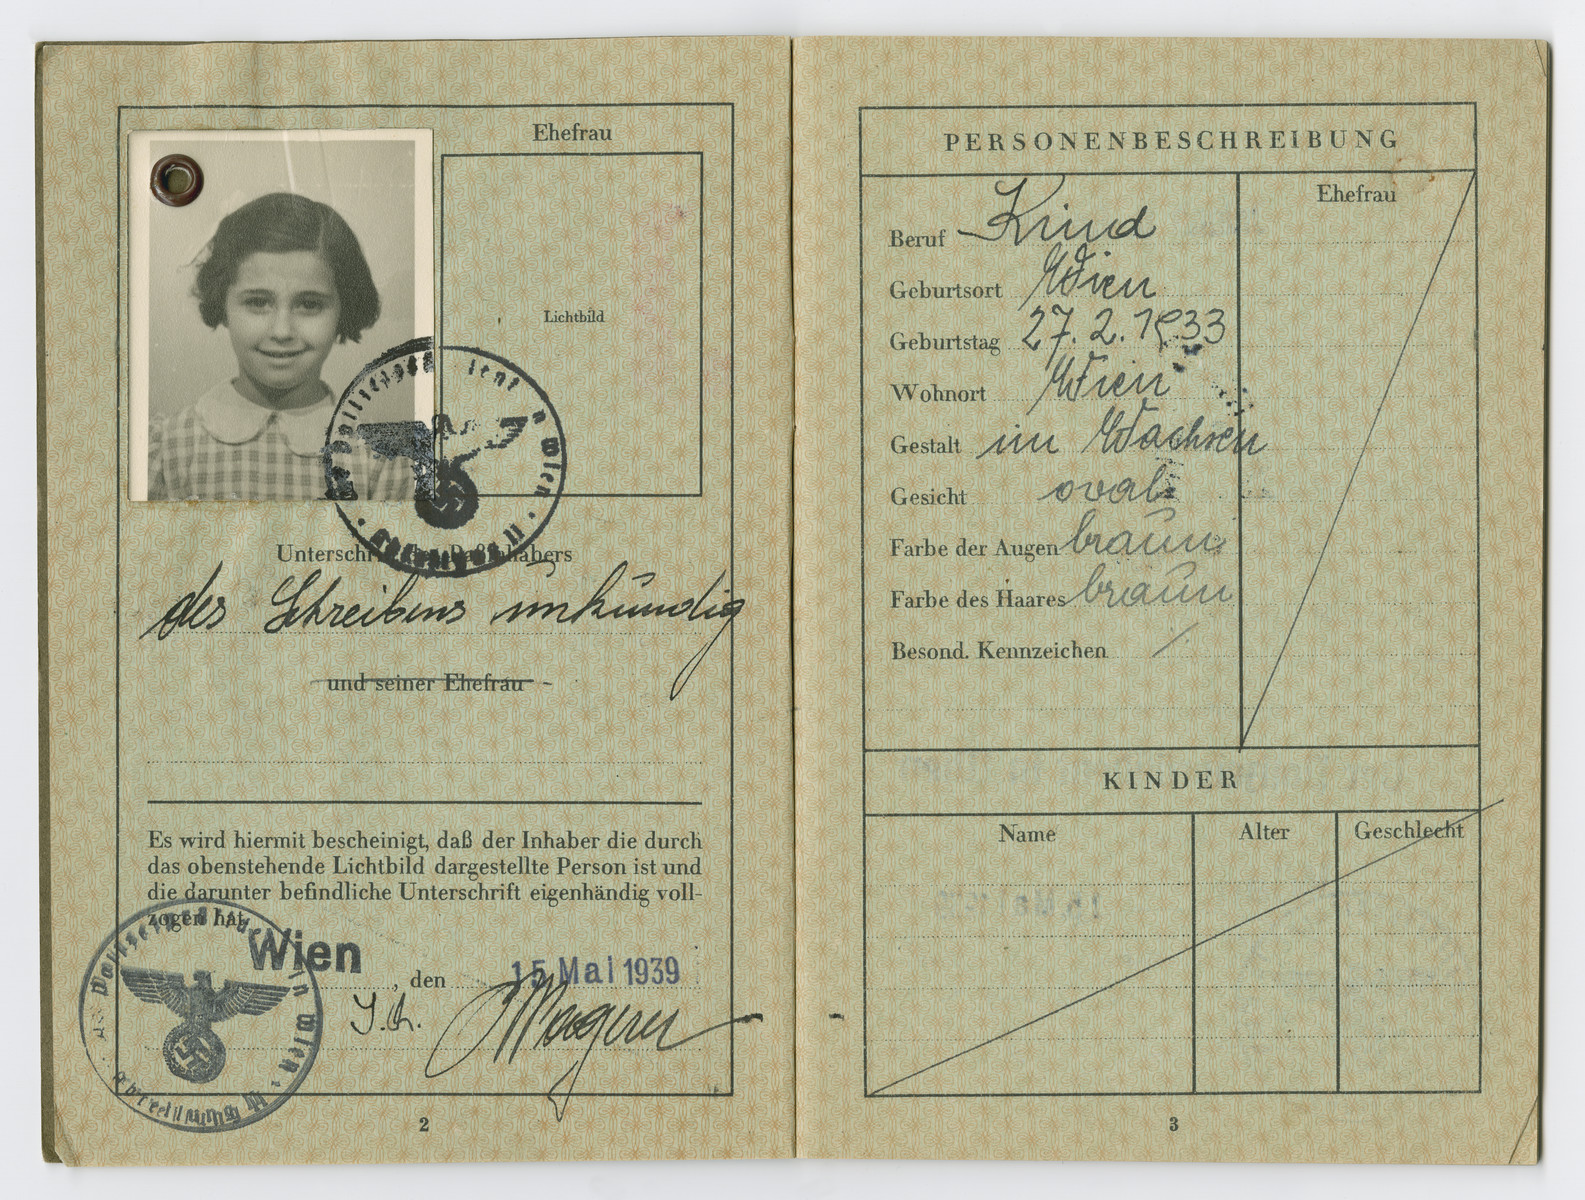 Identification papers issued to Elisabeth Zinger born in Vienna on February 27, 1933.